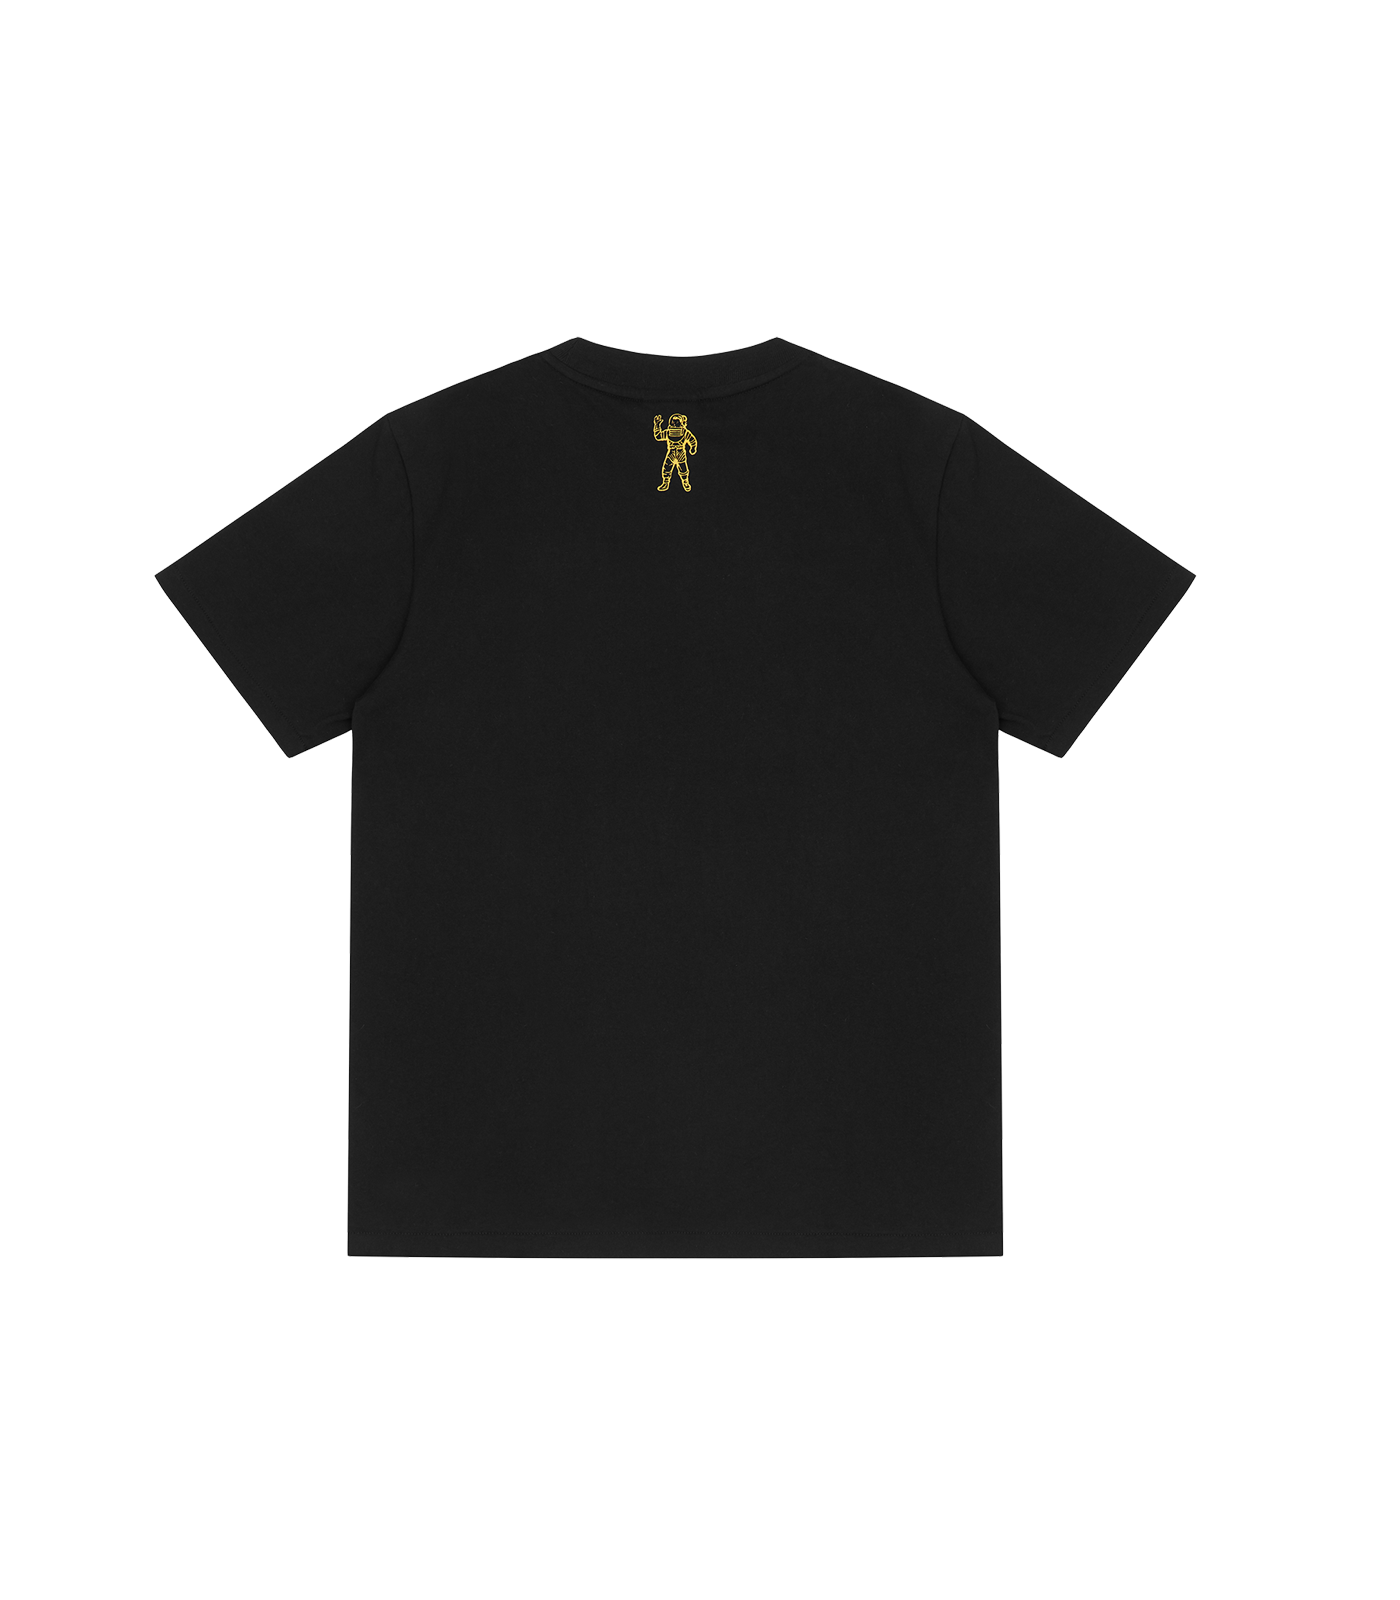 STANDING BEAR LOGO T-SHIRT - BLACK